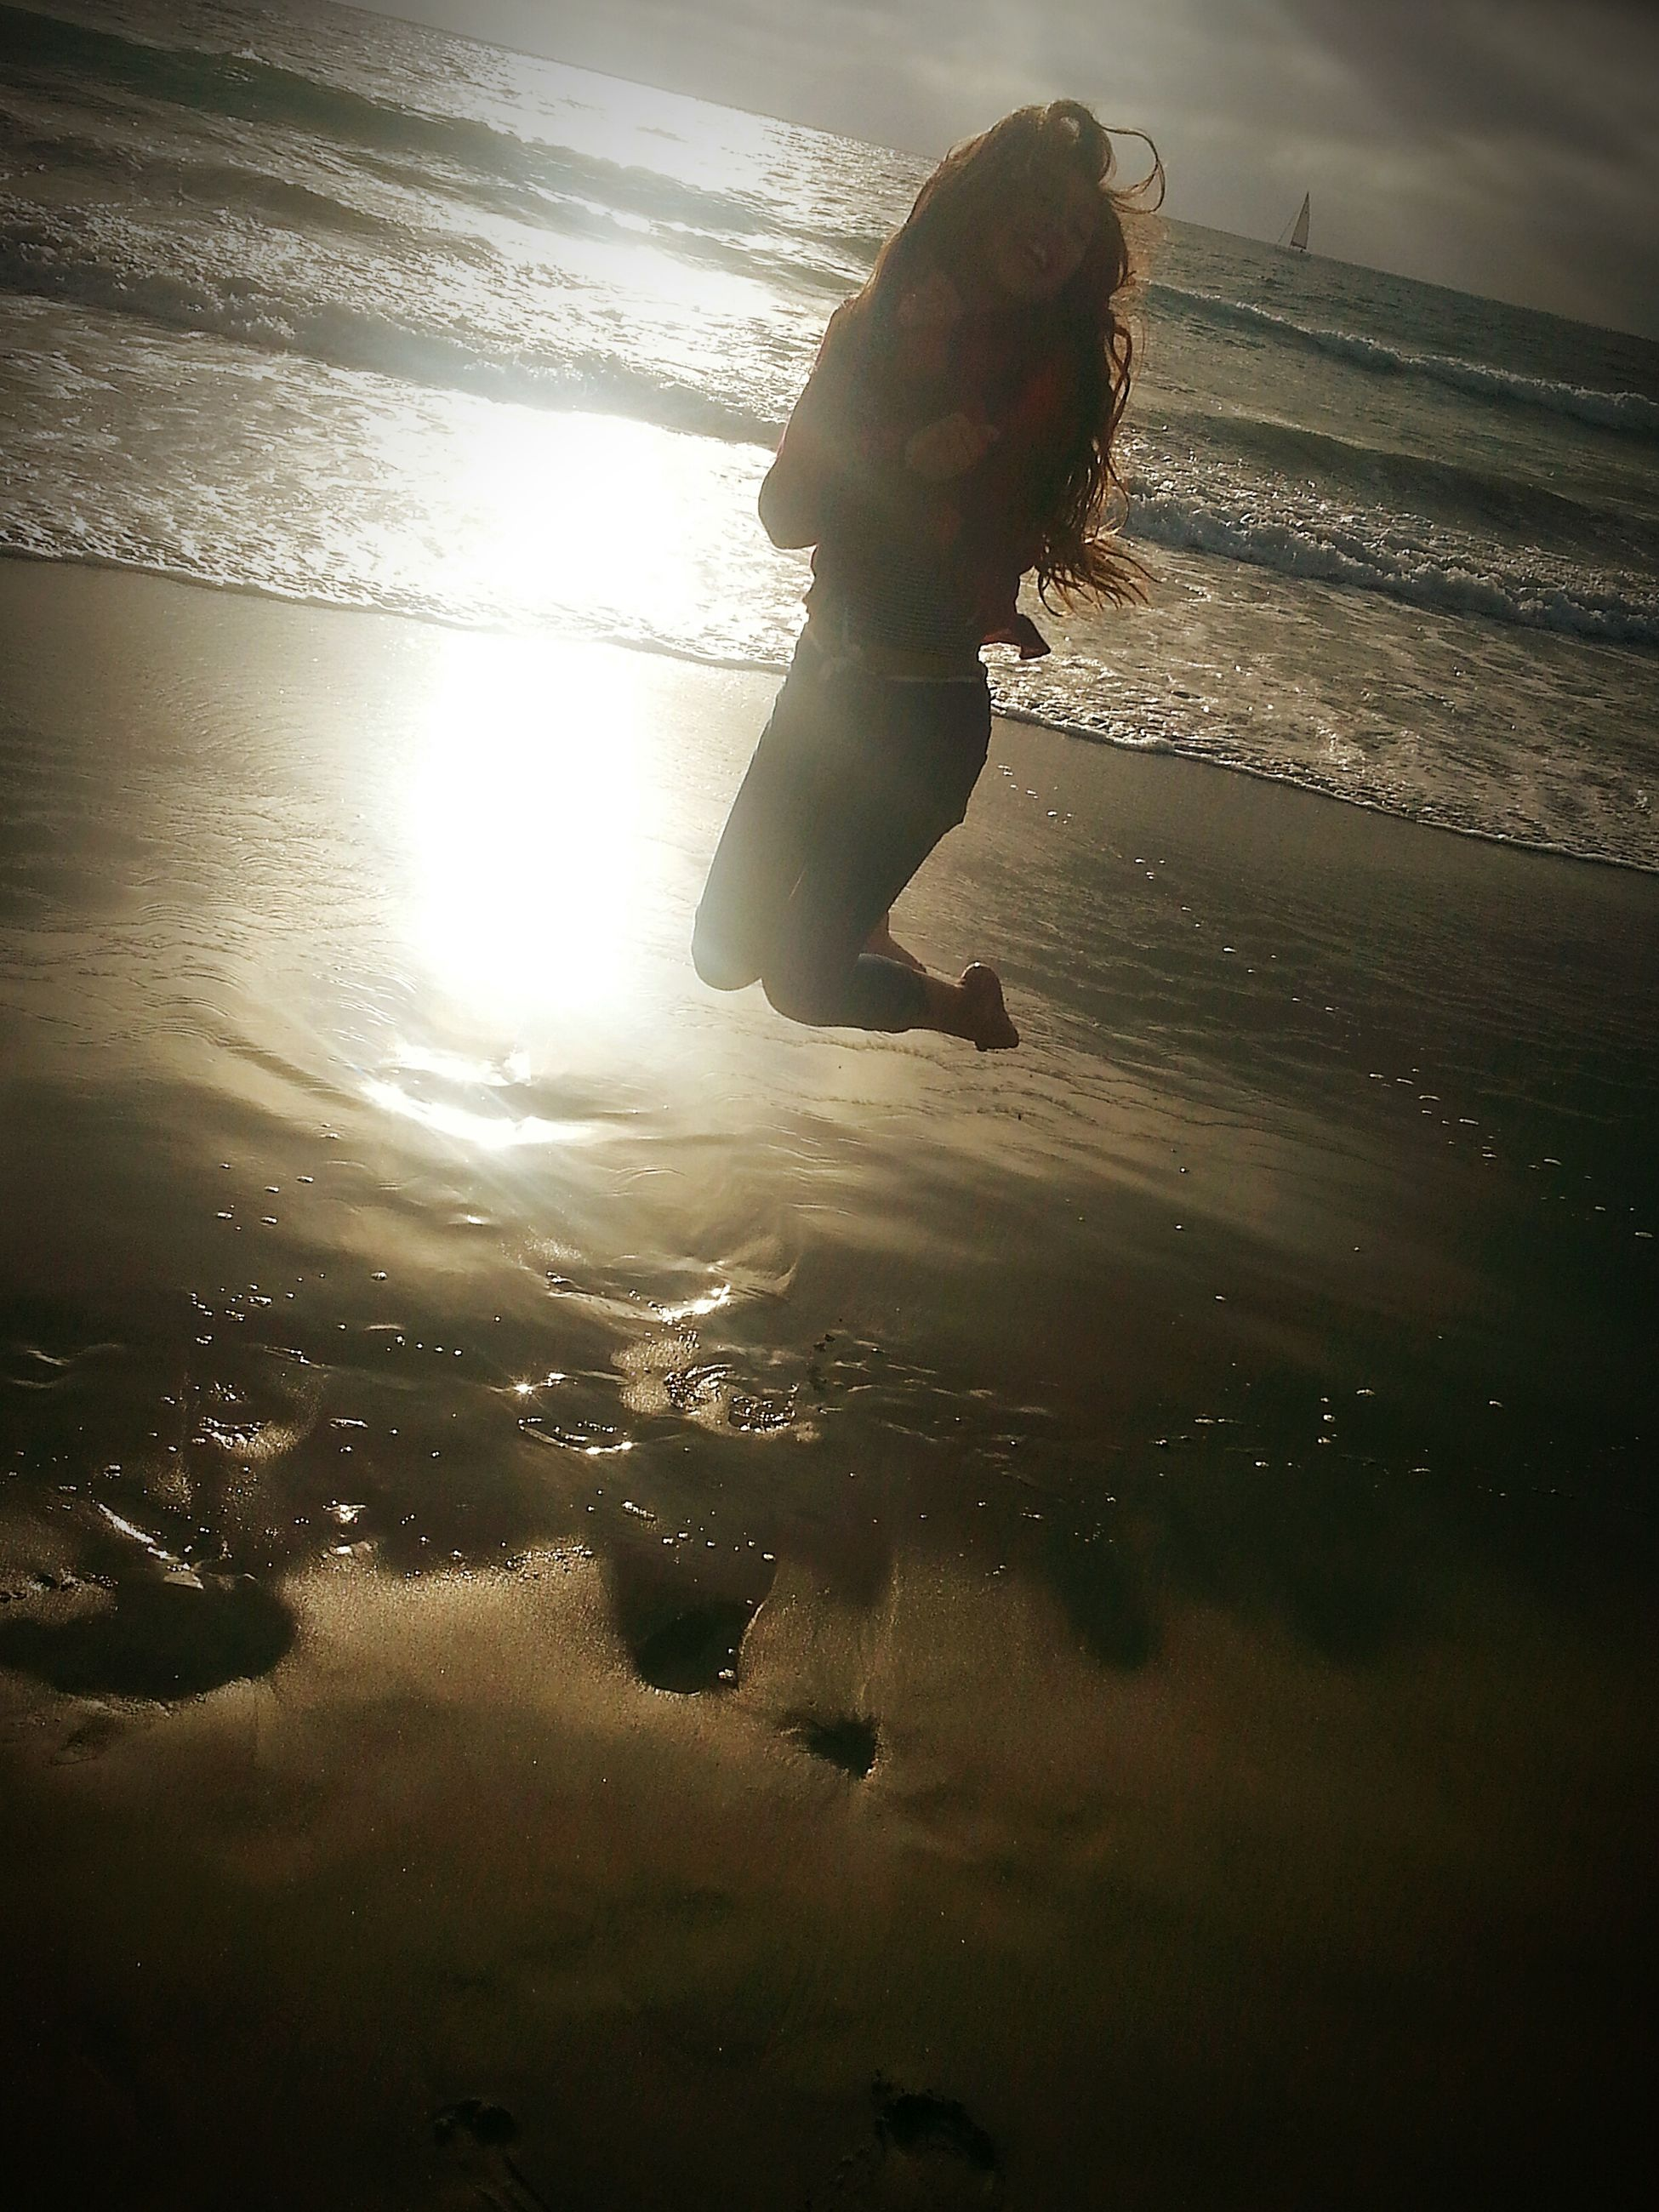 water, beach, shore, sea, sand, reflection, tranquility, sunlight, sunset, sun, nature, sky, leisure activity, silhouette, full length, tranquil scene, beauty in nature, lifestyles